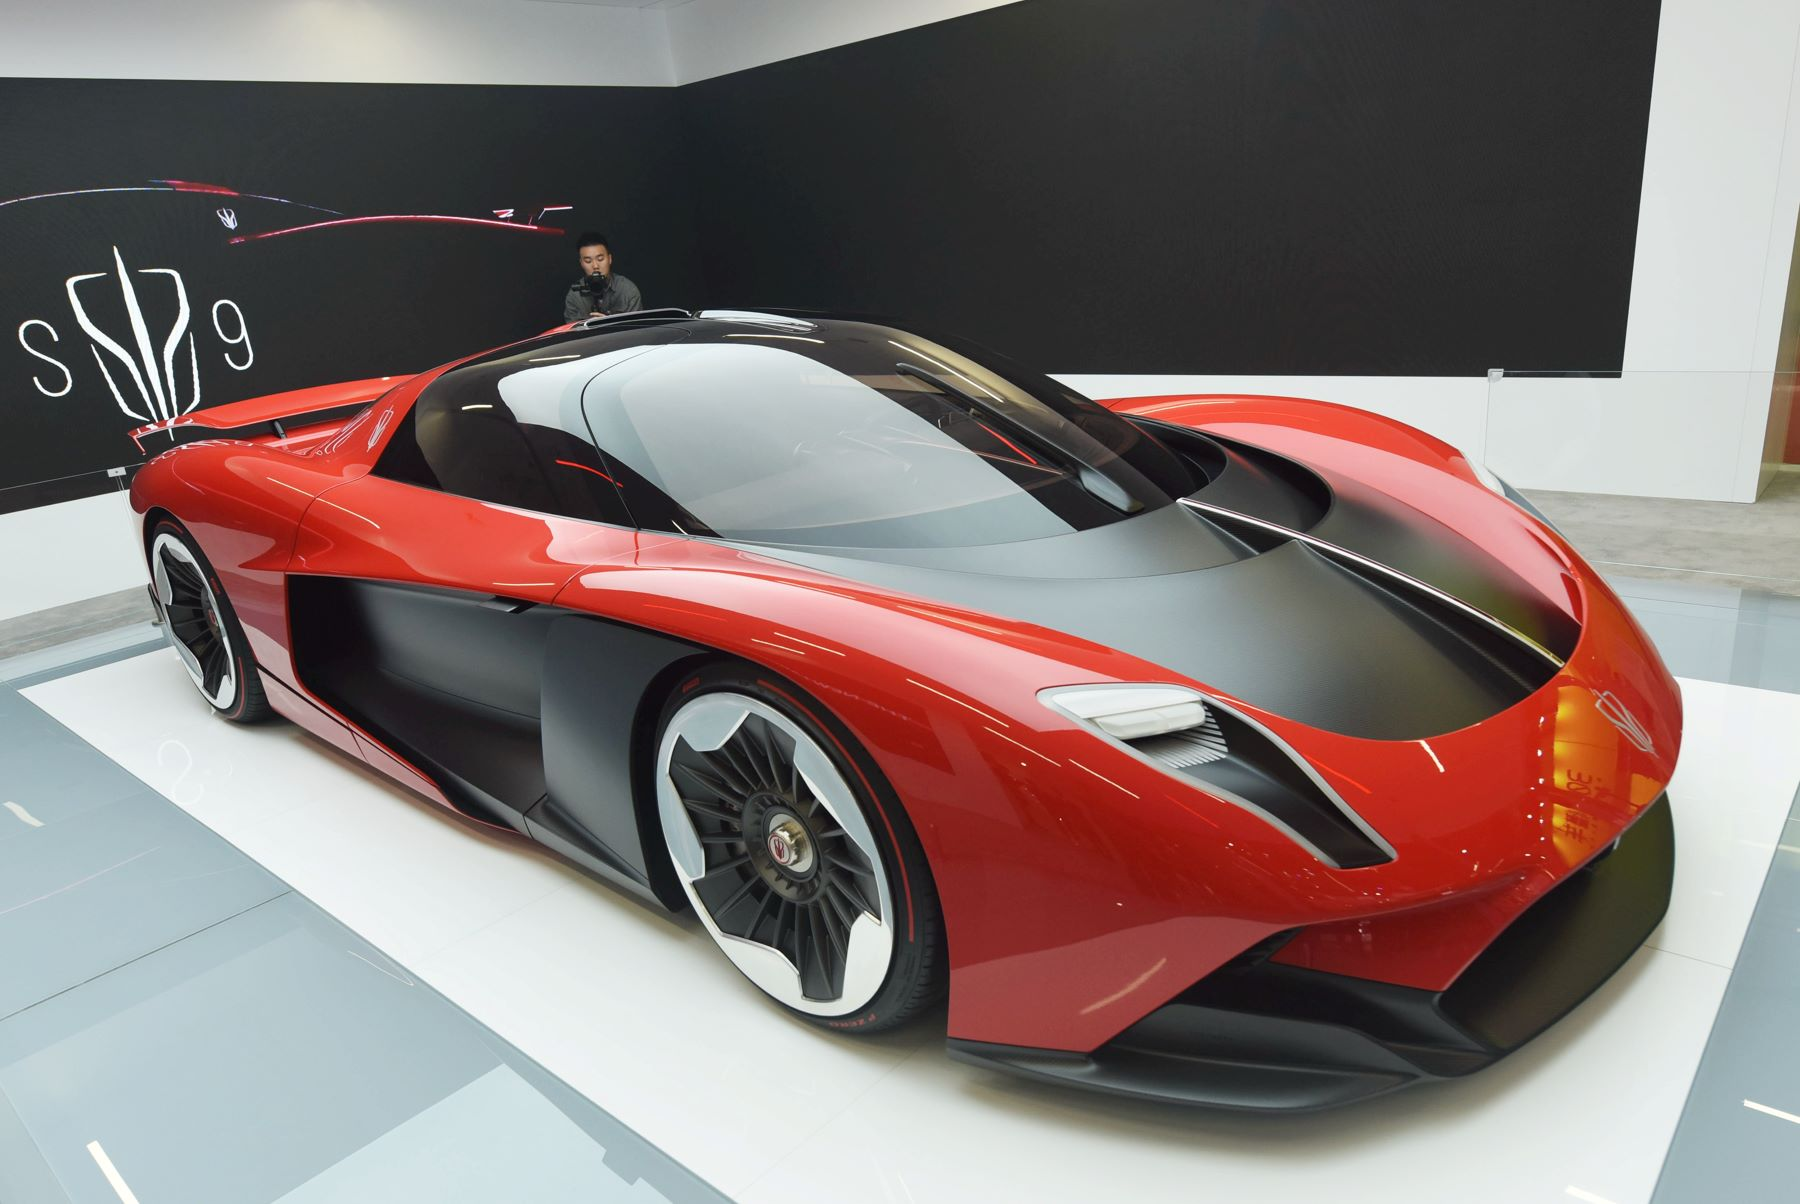 A Hong Qi supercar S9 model with over 1,400 horsepower at the Shanghai Auto Show in China